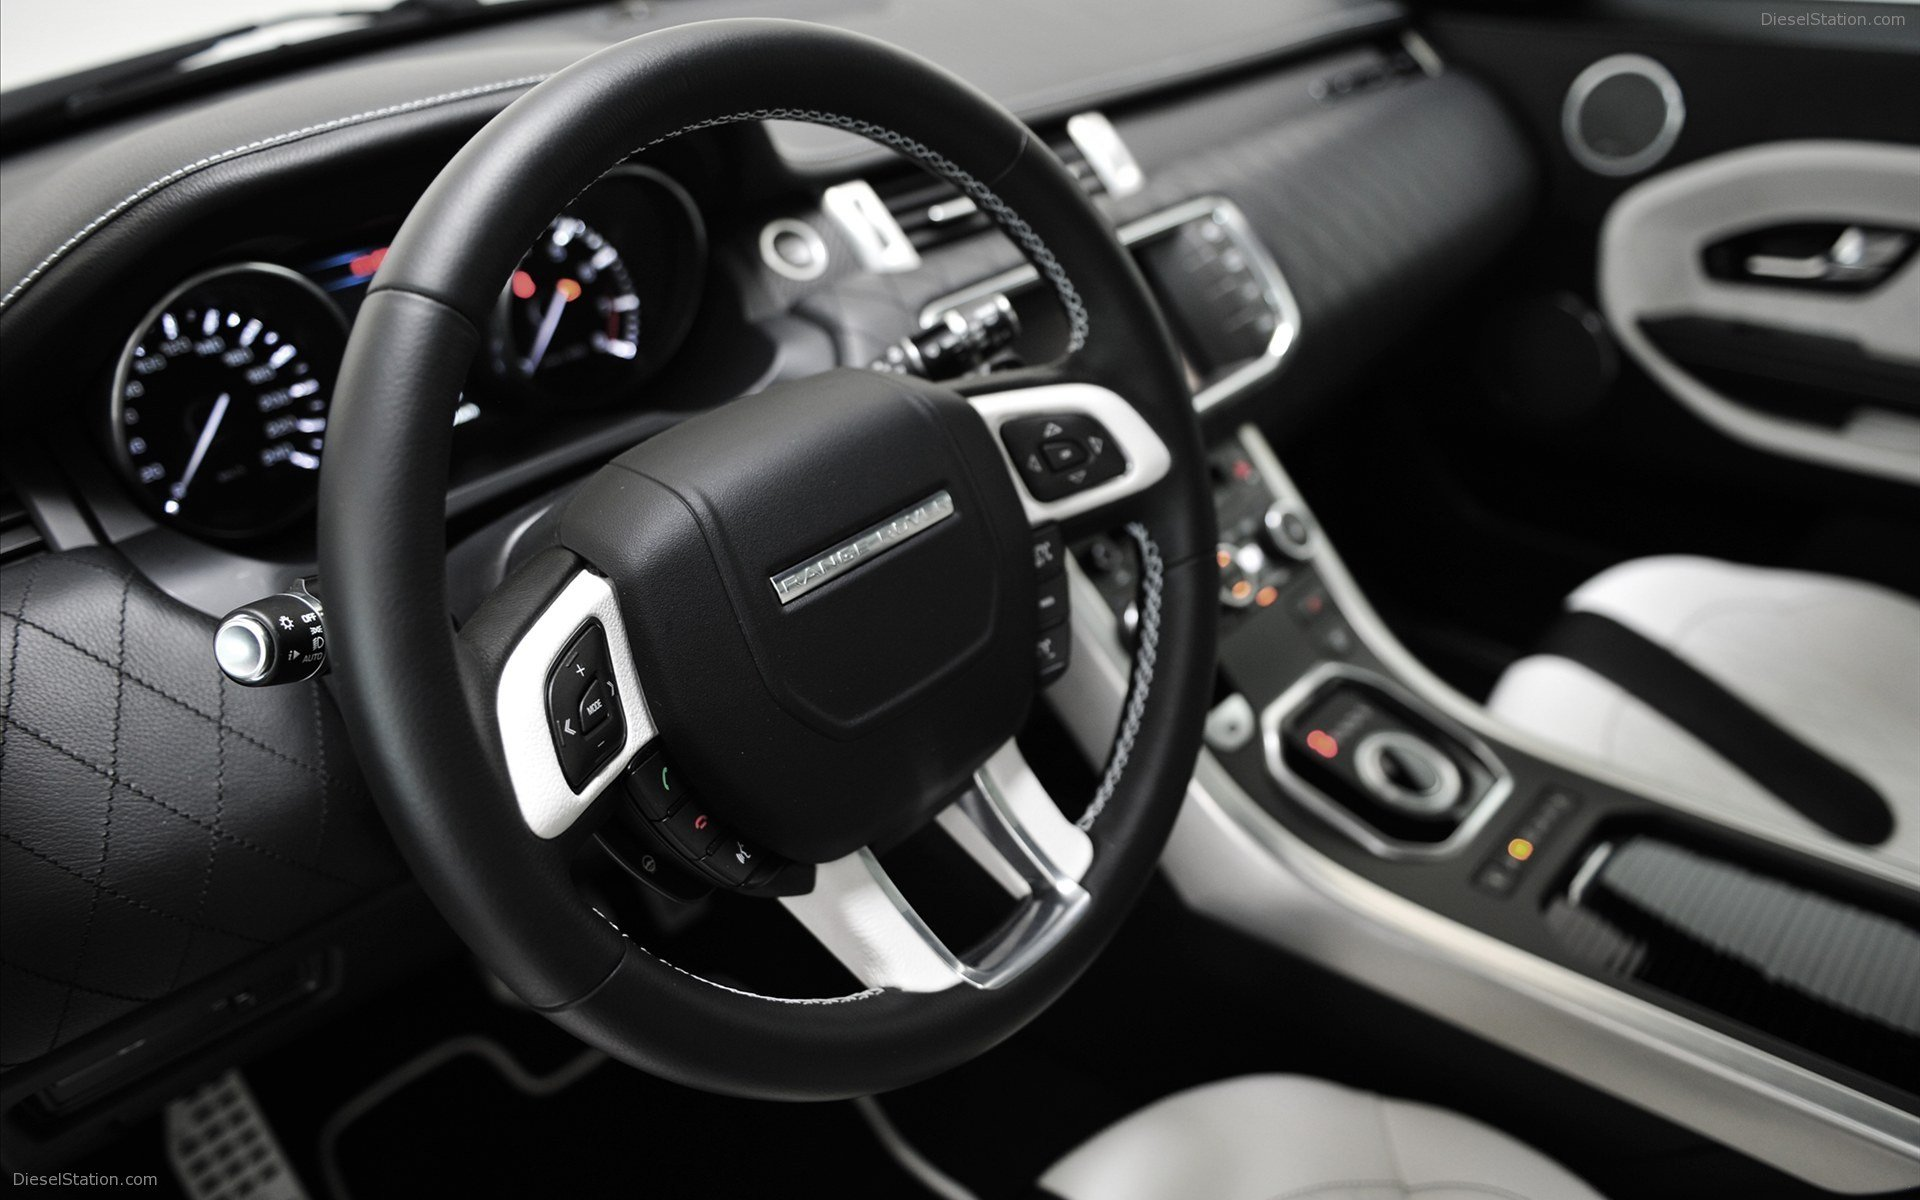 New Startech Range Rover Evoque 2011 Widescreen Exotic Car On This Month